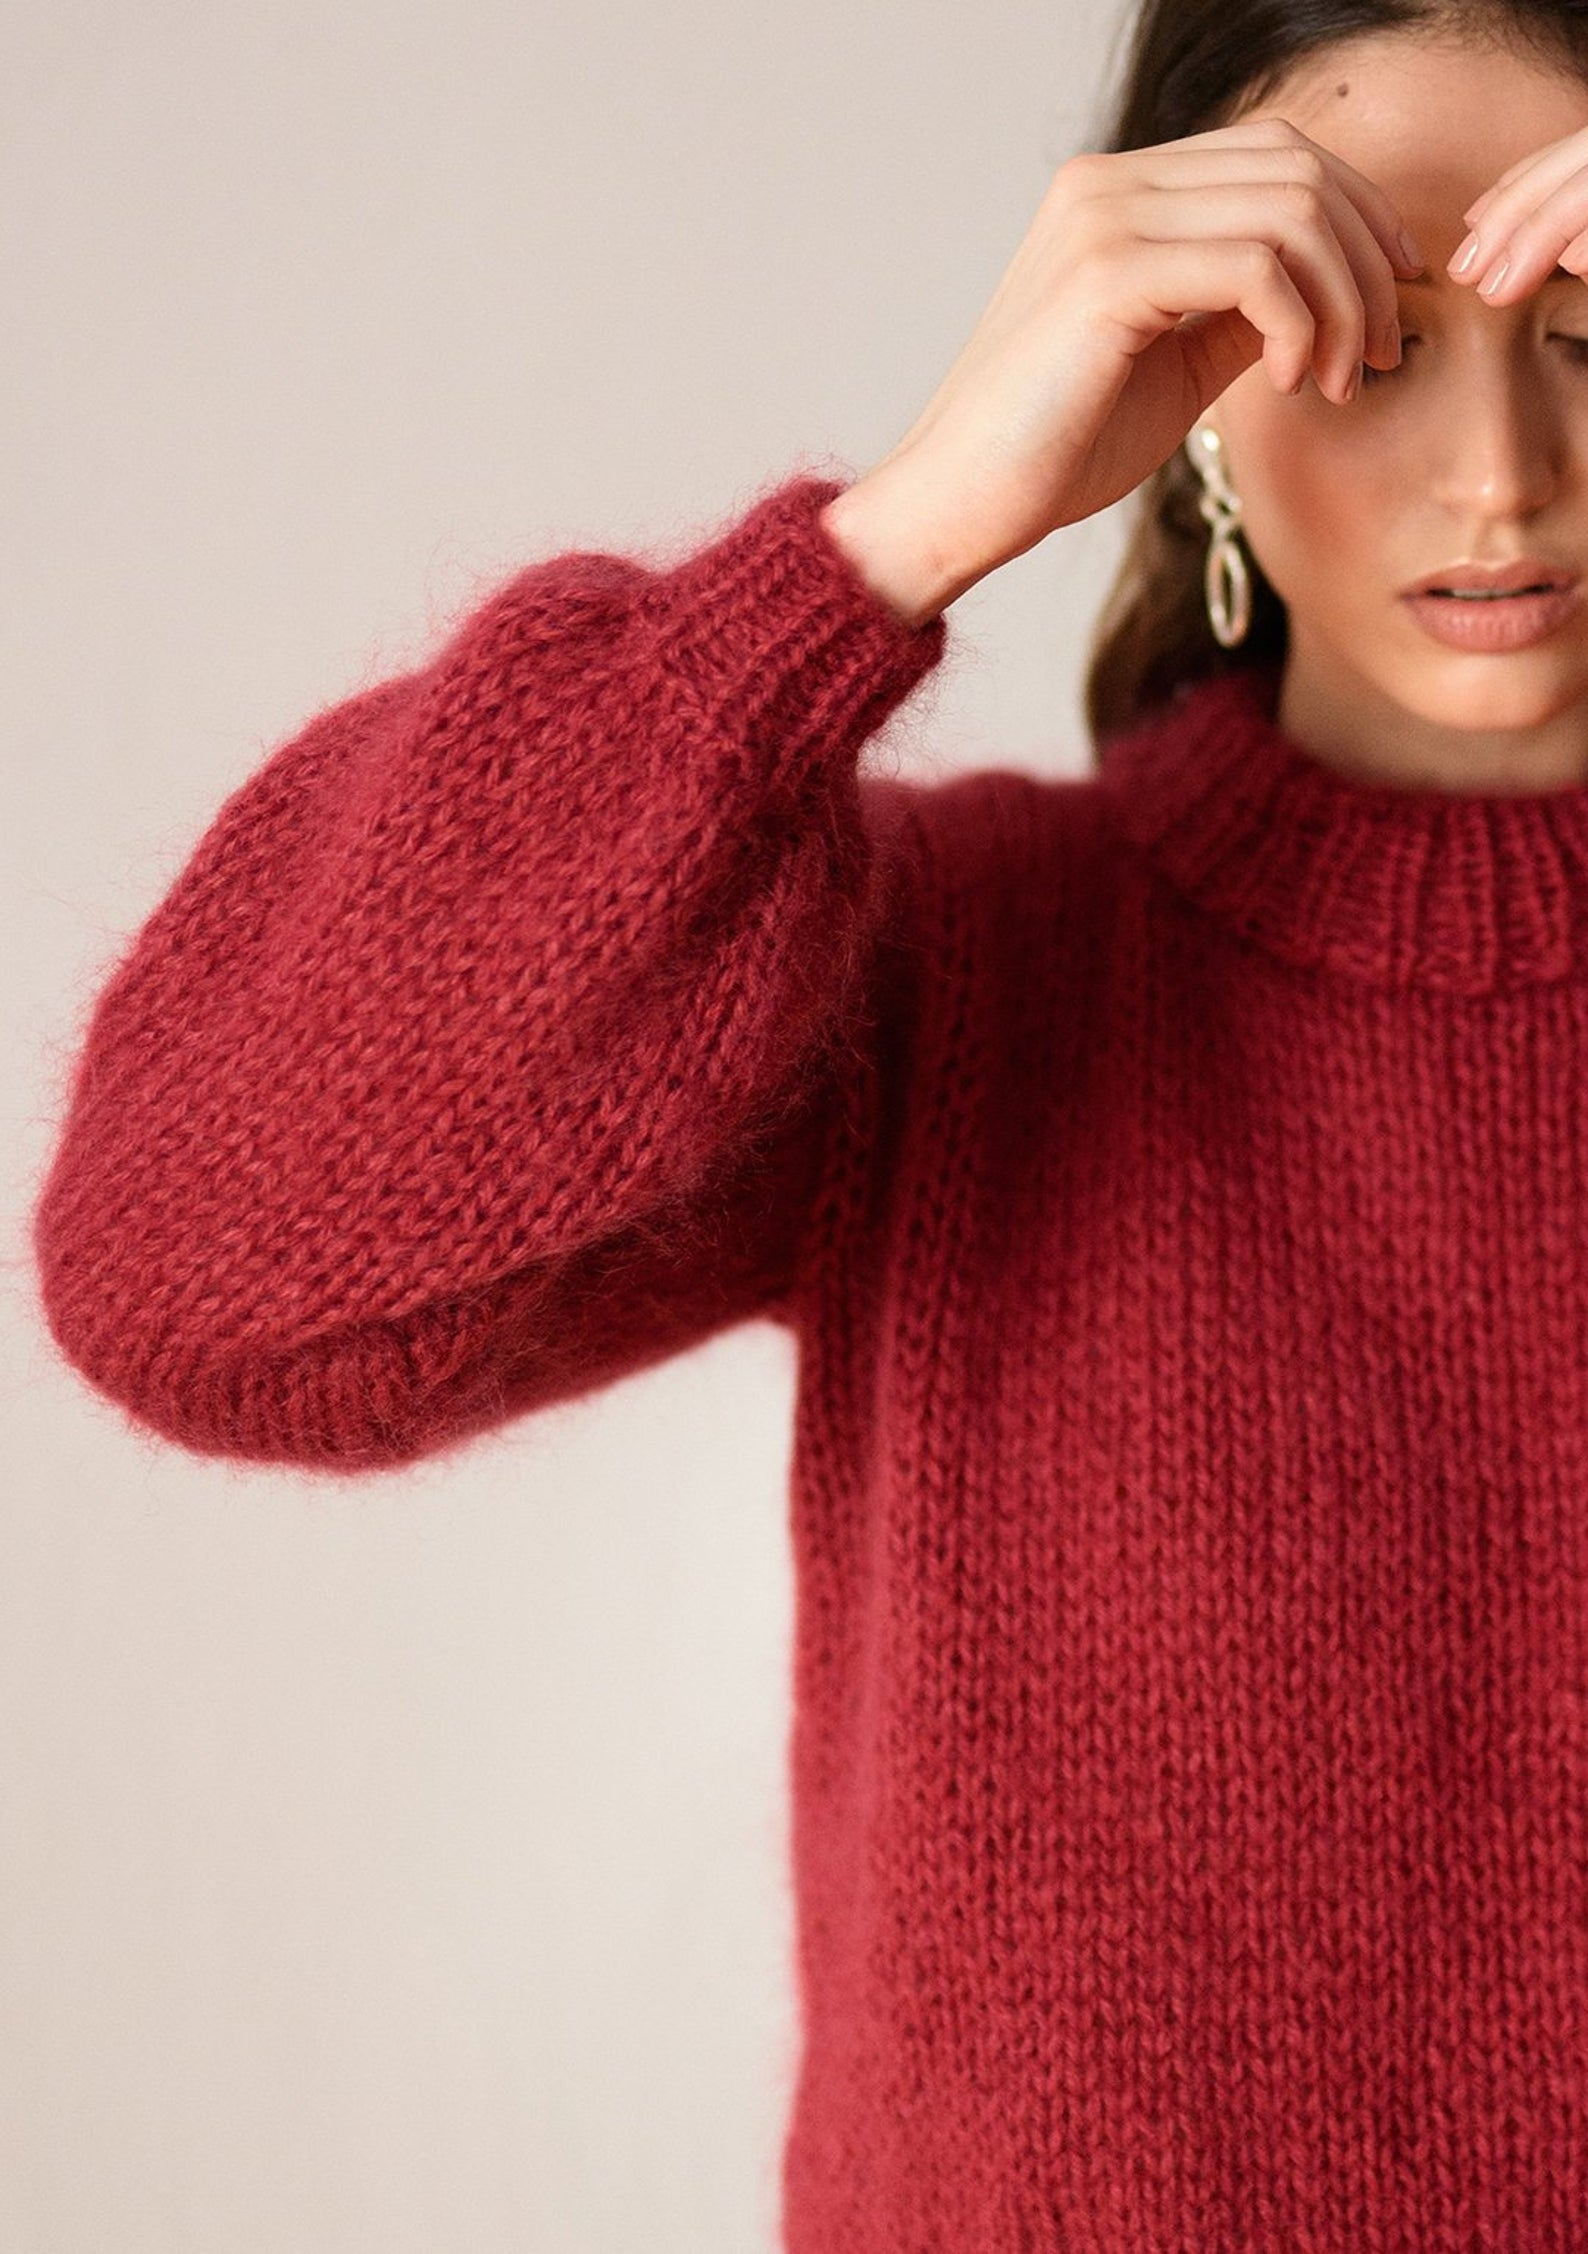 A woman wearing an oversize red knit.